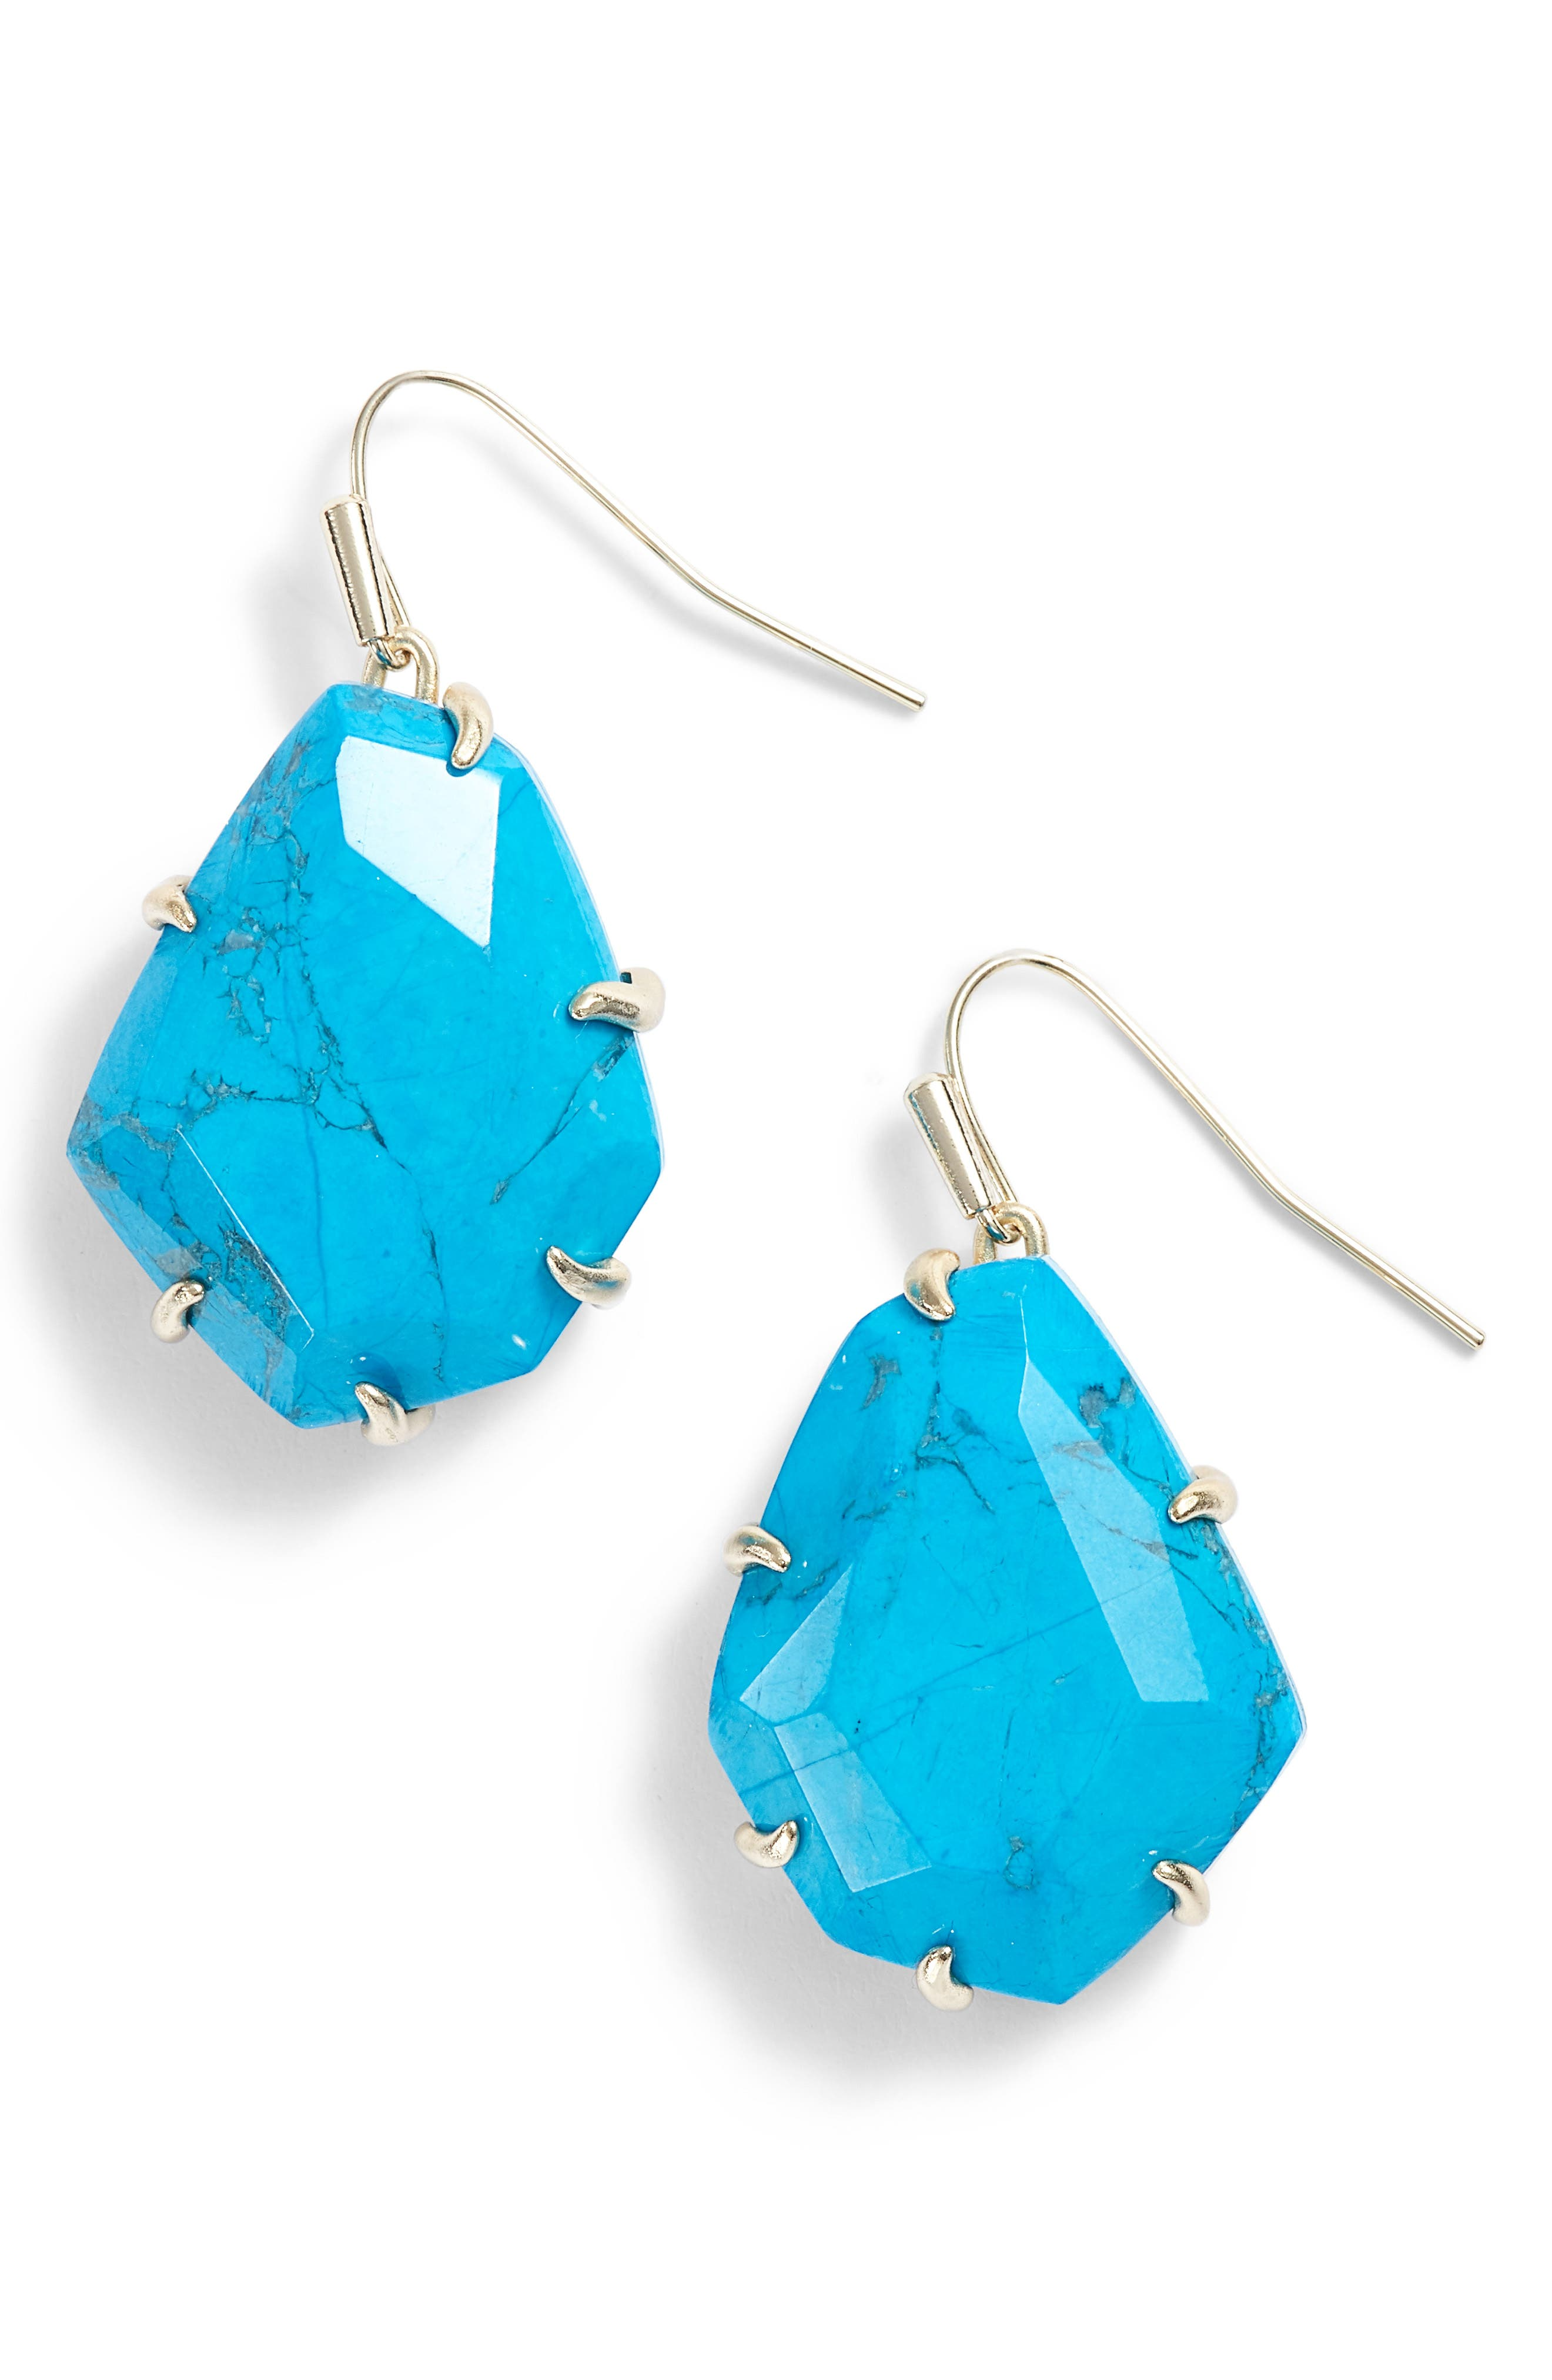 Rosenell Stone Earrings,                             Main thumbnail 1, color,                             Aqua Howlite/ Gold